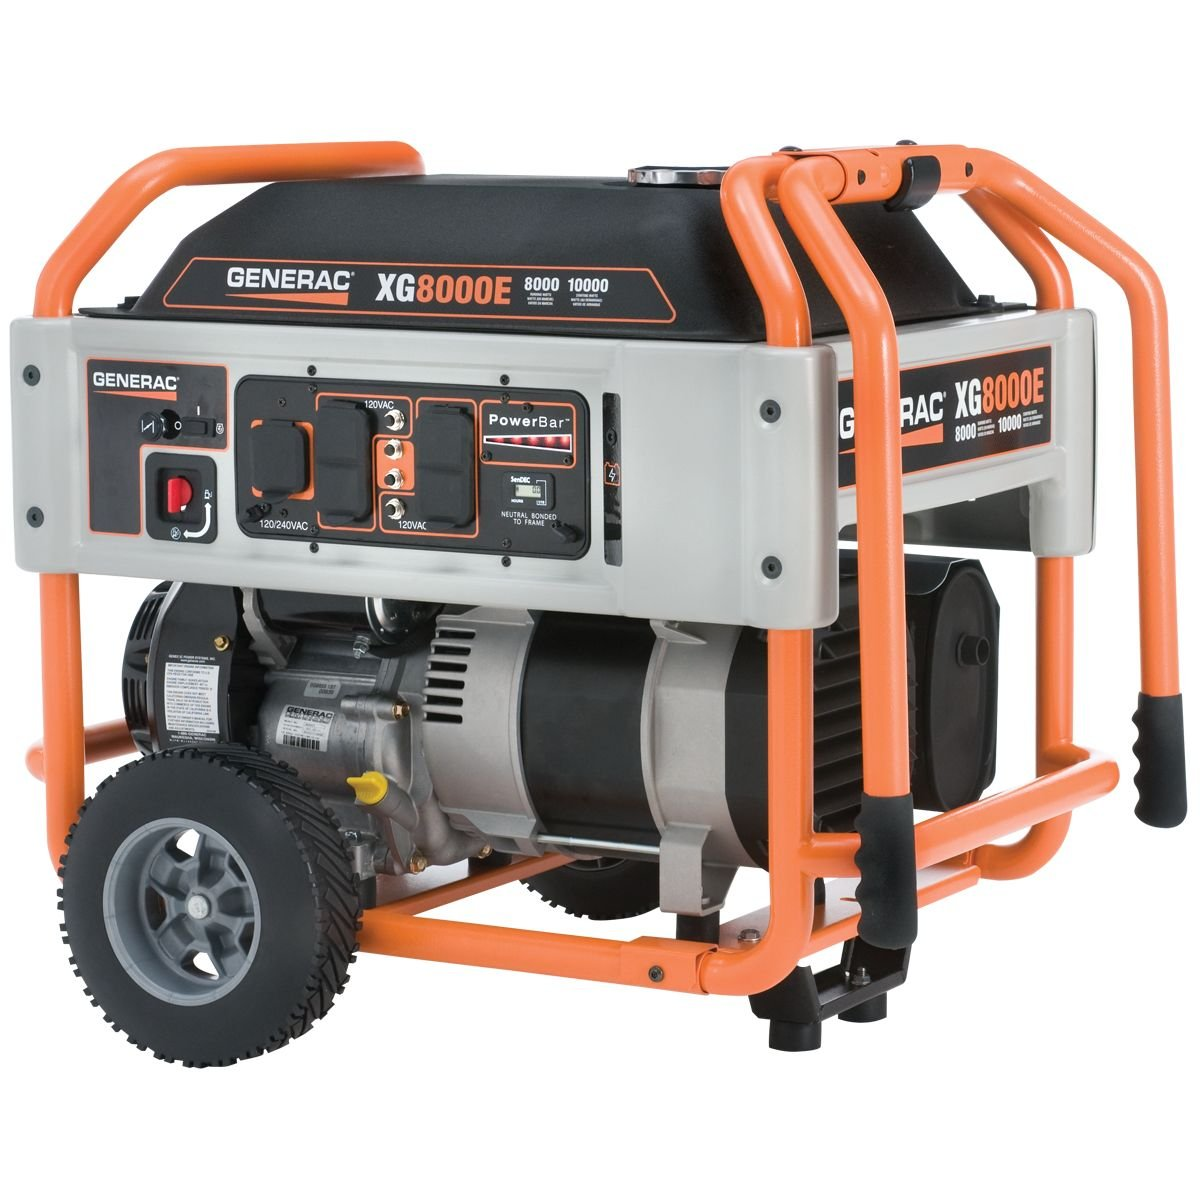 Amazon.com : Generac 5747, 8000 Running Watts/10000 Starting Watts, Gas  Powered Portable Generator(Discontinued by Manufacturer) : Garden & Outdoor